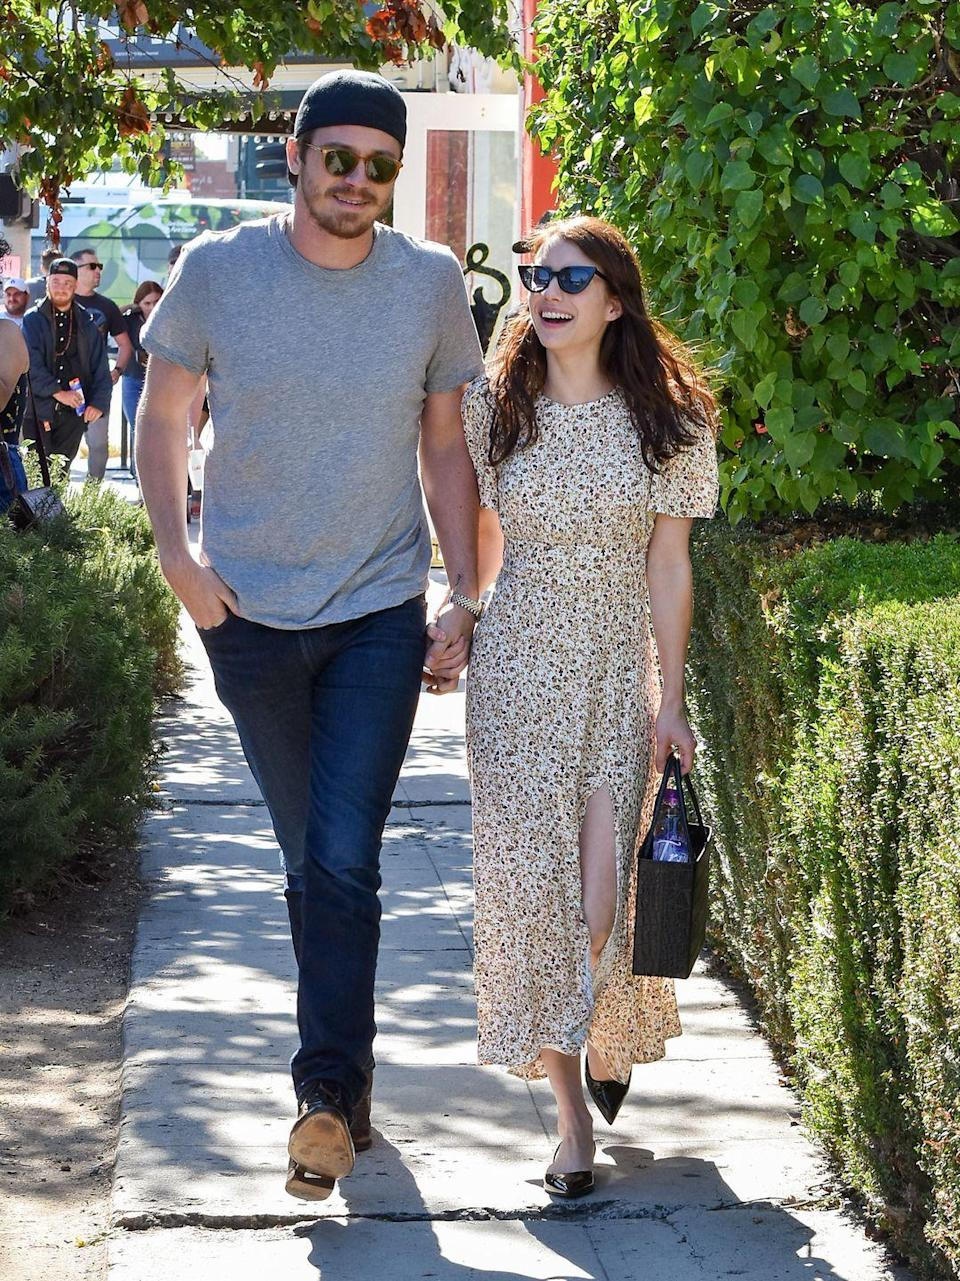 "<p>After ending long-term relationships with <a href=""https://www.elle.com/culture/celebrities/news/a35573/kirsten-dunst-and-garrett-hedlund-break-up/"" rel=""nofollow noopener"" target=""_blank"" data-ylk=""slk:Kirsten Dunst"" class=""link rapid-noclick-resp"">Kirsten Dunst</a> and <a href=""https://www.elle.com/culture/celebrities/a29282990/halsey-evan-peters-dating/"" rel=""nofollow noopener"" target=""_blank"" data-ylk=""slk:Evan Peters"" class=""link rapid-noclick-resp"">Evan Peters</a>, respectively, this couple <a href=""https://www.eonline.com/news/1025346/emma-roberts-is-becoming-romantic-with-garrett-hedlund-after-evan-peters-split"" rel=""nofollow noopener"" target=""_blank"" data-ylk=""slk:began dating"" class=""link rapid-noclick-resp"">began dating</a> in March 2019. Hedlund and Roberts keep their relationship mostly to themselves. Despite dating for more than a year, a source told <em><a href=""https://www.usmagazine.com/celebrity-news/pictures/are-emma-roberts-and-garrett-hedlund-talking-about-marriage/going-casual-4/"" rel=""nofollow noopener"" target=""_blank"" data-ylk=""slk:Us Weekly"" class=""link rapid-noclick-resp"">Us Weekly</a> </em>in January that they're in no rush to walk down the aisle. ""They like hanging out and going out together, and their relationship is more fun than serious,"" the insider said.</p>"